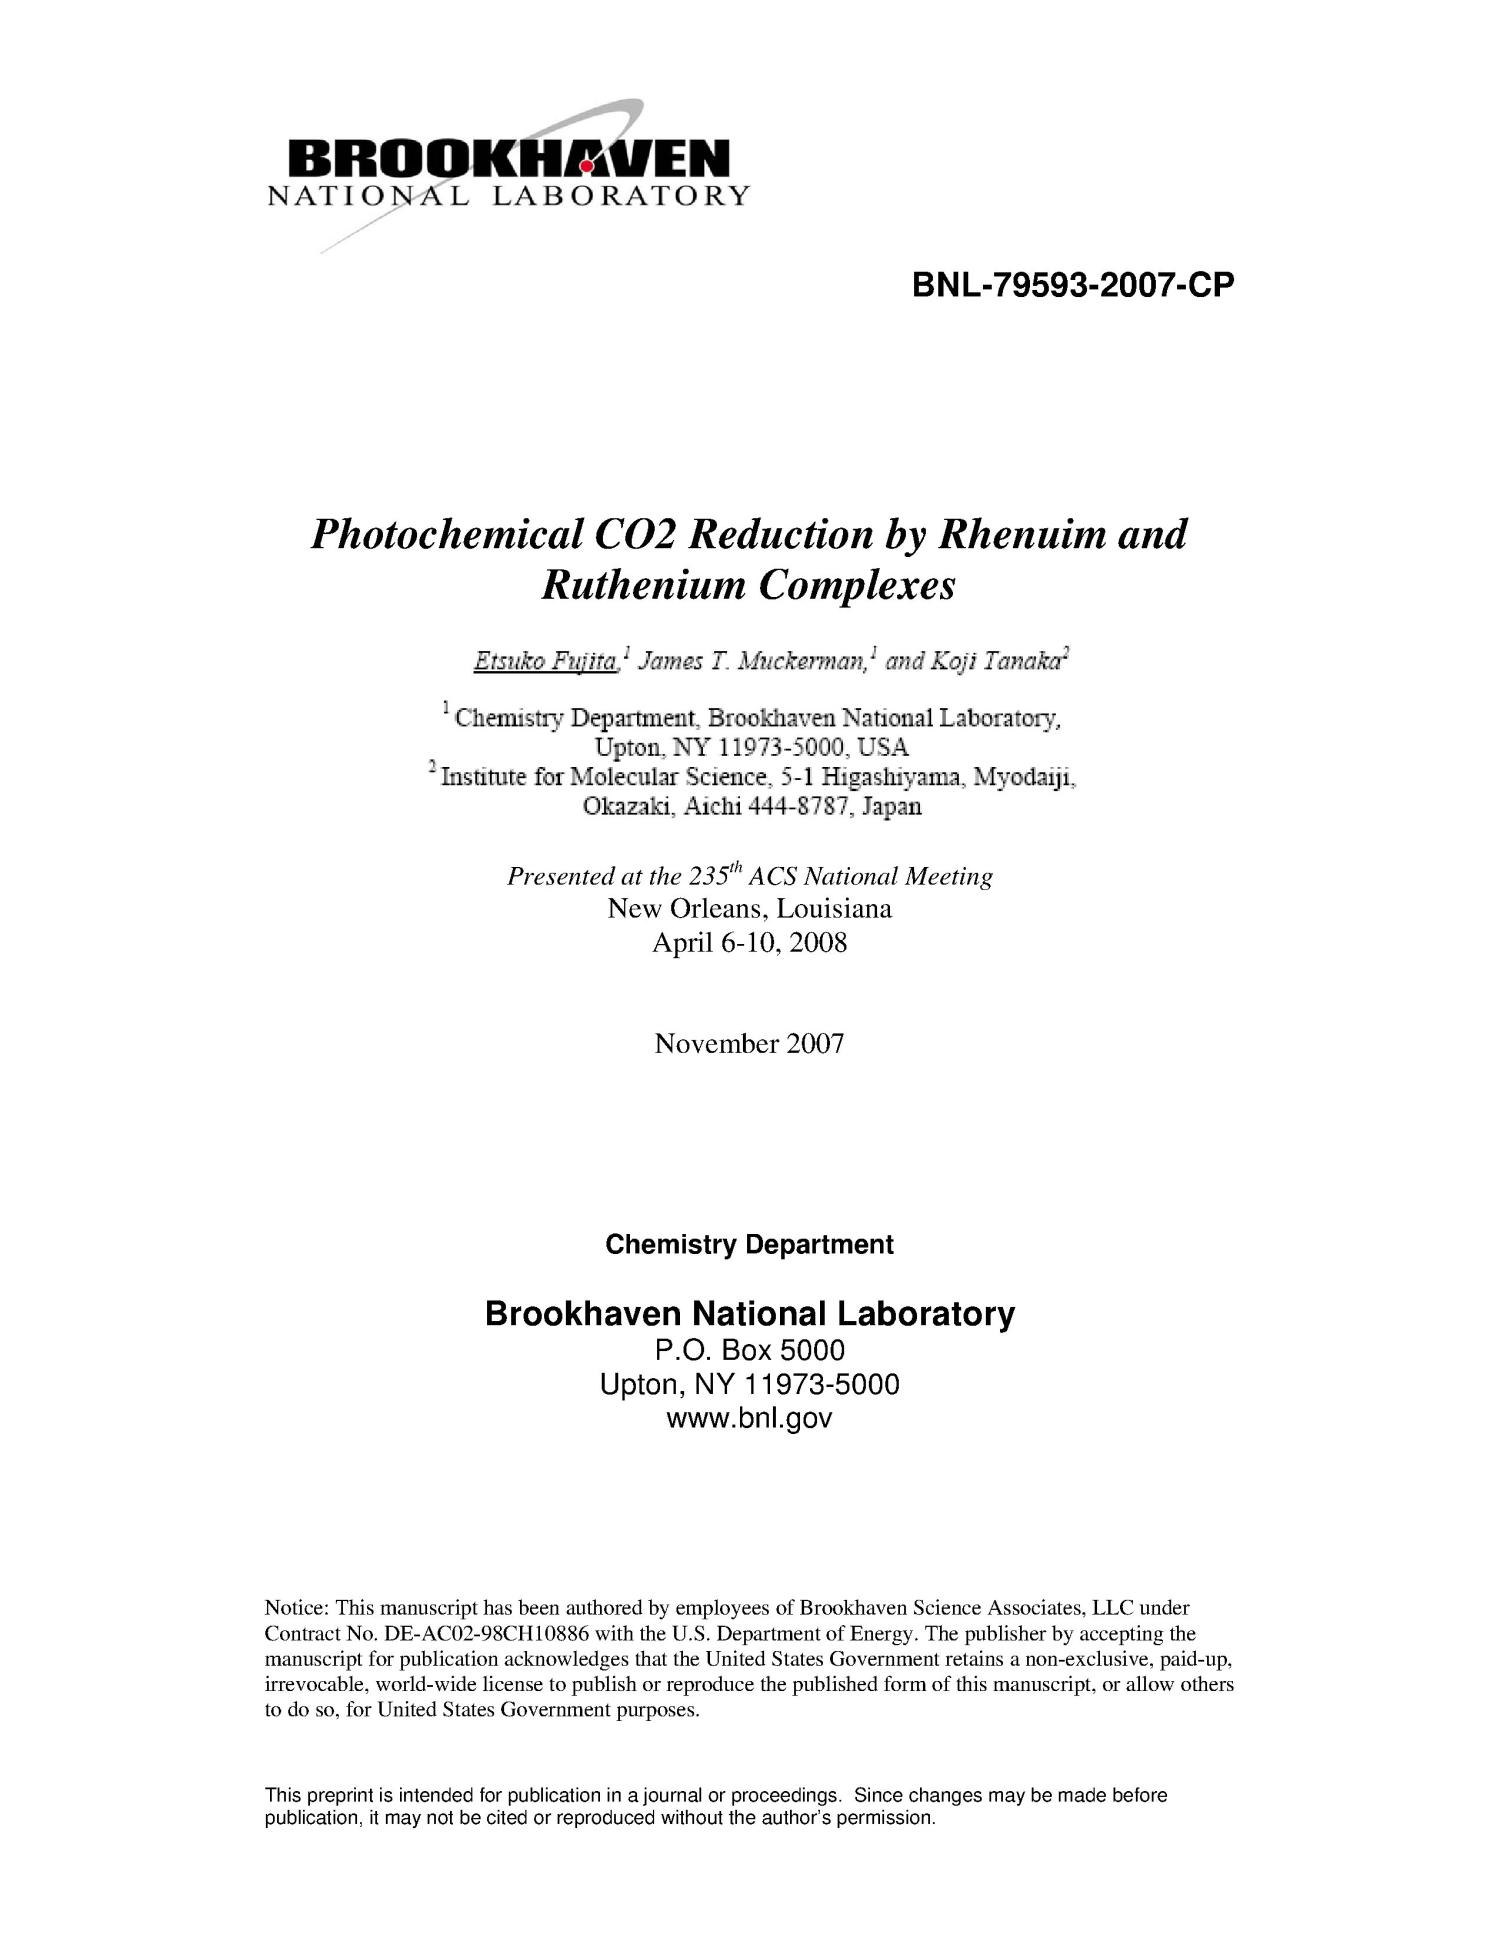 PHOTOCHEMICAL CO2 REDUCTION BY RHENUIM AND RUTHENIUM COMPLEXES.                                                                                                      [Sequence #]: 1 of 4